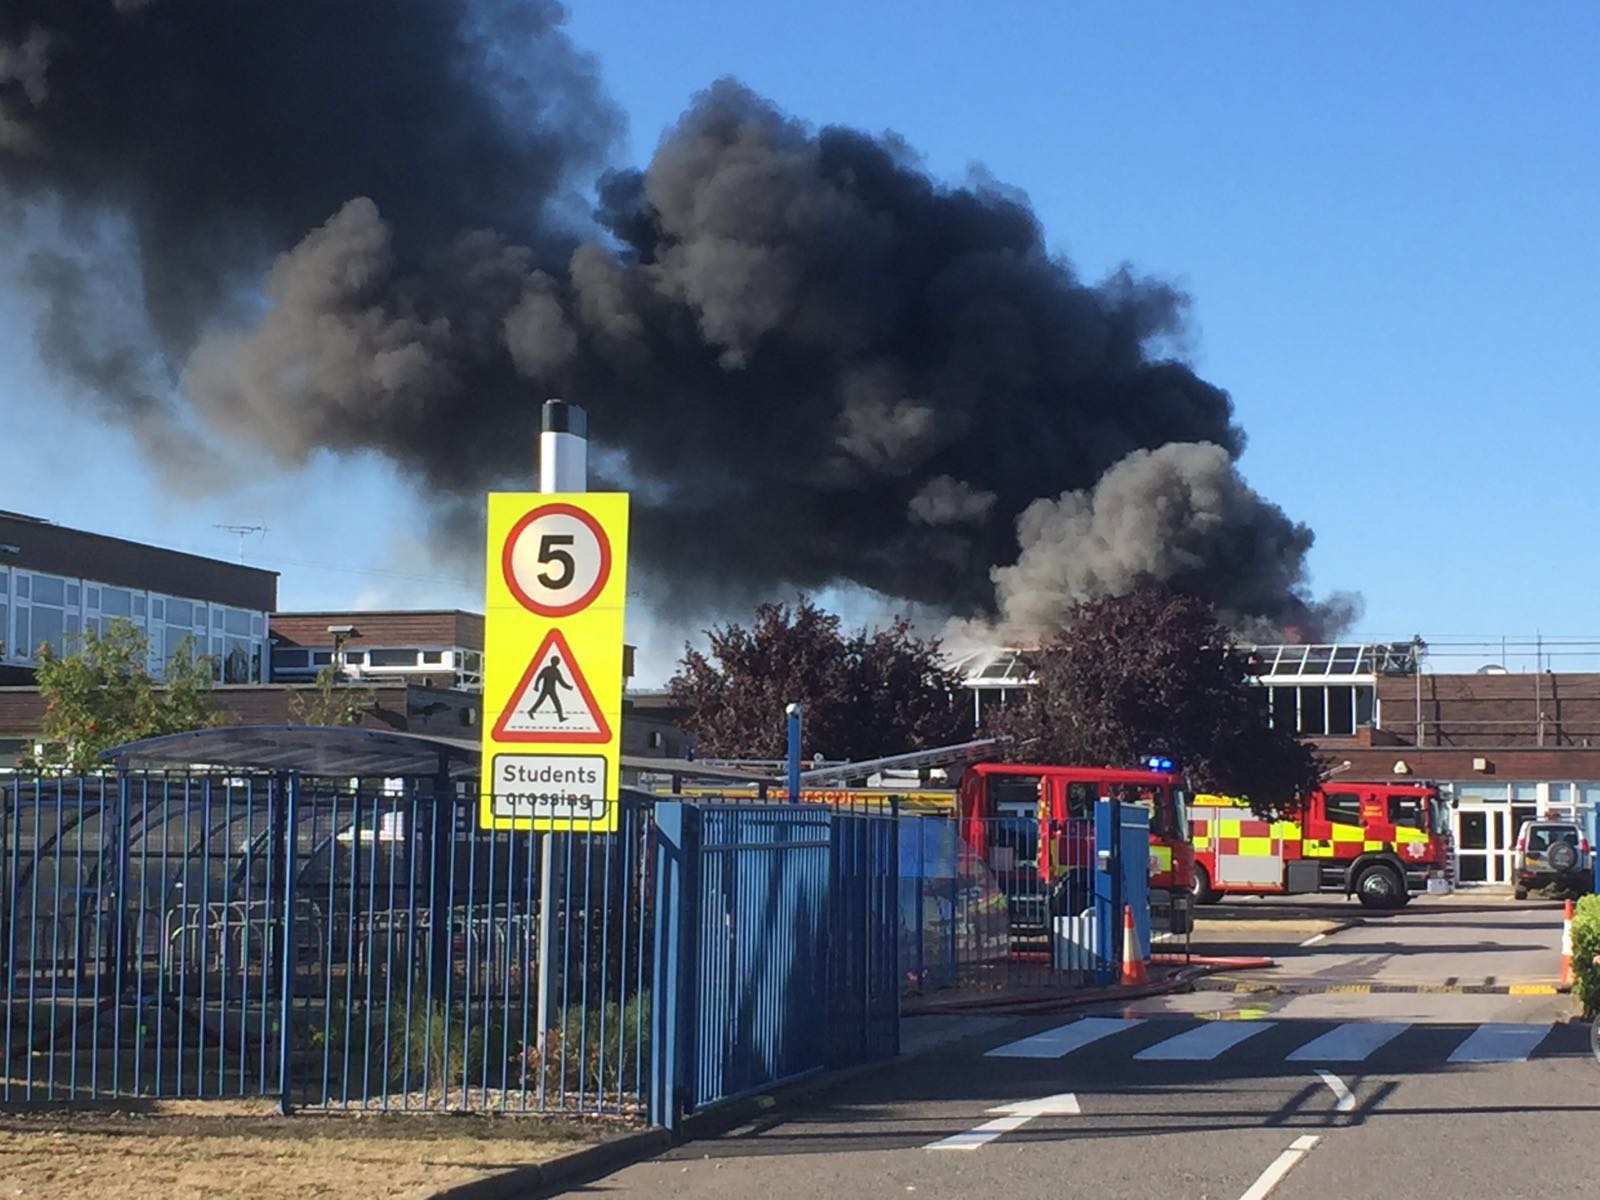 Essex secondary school hit by fire